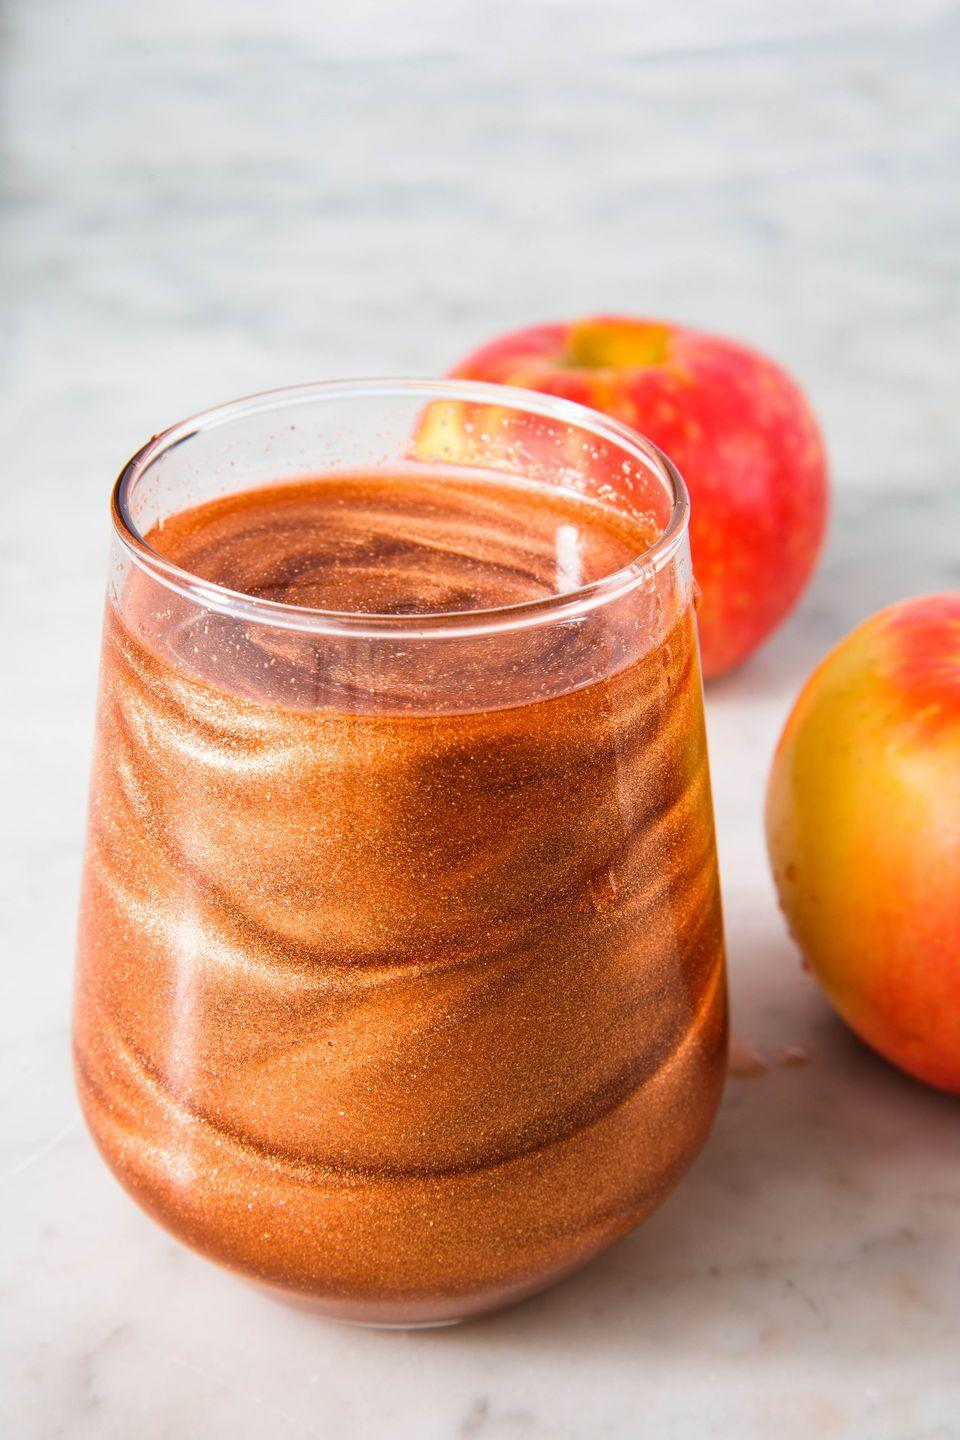 """<p>It's allll about the edible glitter. </p><p>Get the recipe from <a href=""""https://www.delish.com/cooking/recipe-ideas/a23878264/poison-apple-cocktails-recipe/"""" rel=""""nofollow noopener"""" target=""""_blank"""" data-ylk=""""slk:Delish"""" class=""""link rapid-noclick-resp"""">Delish</a>. </p>"""